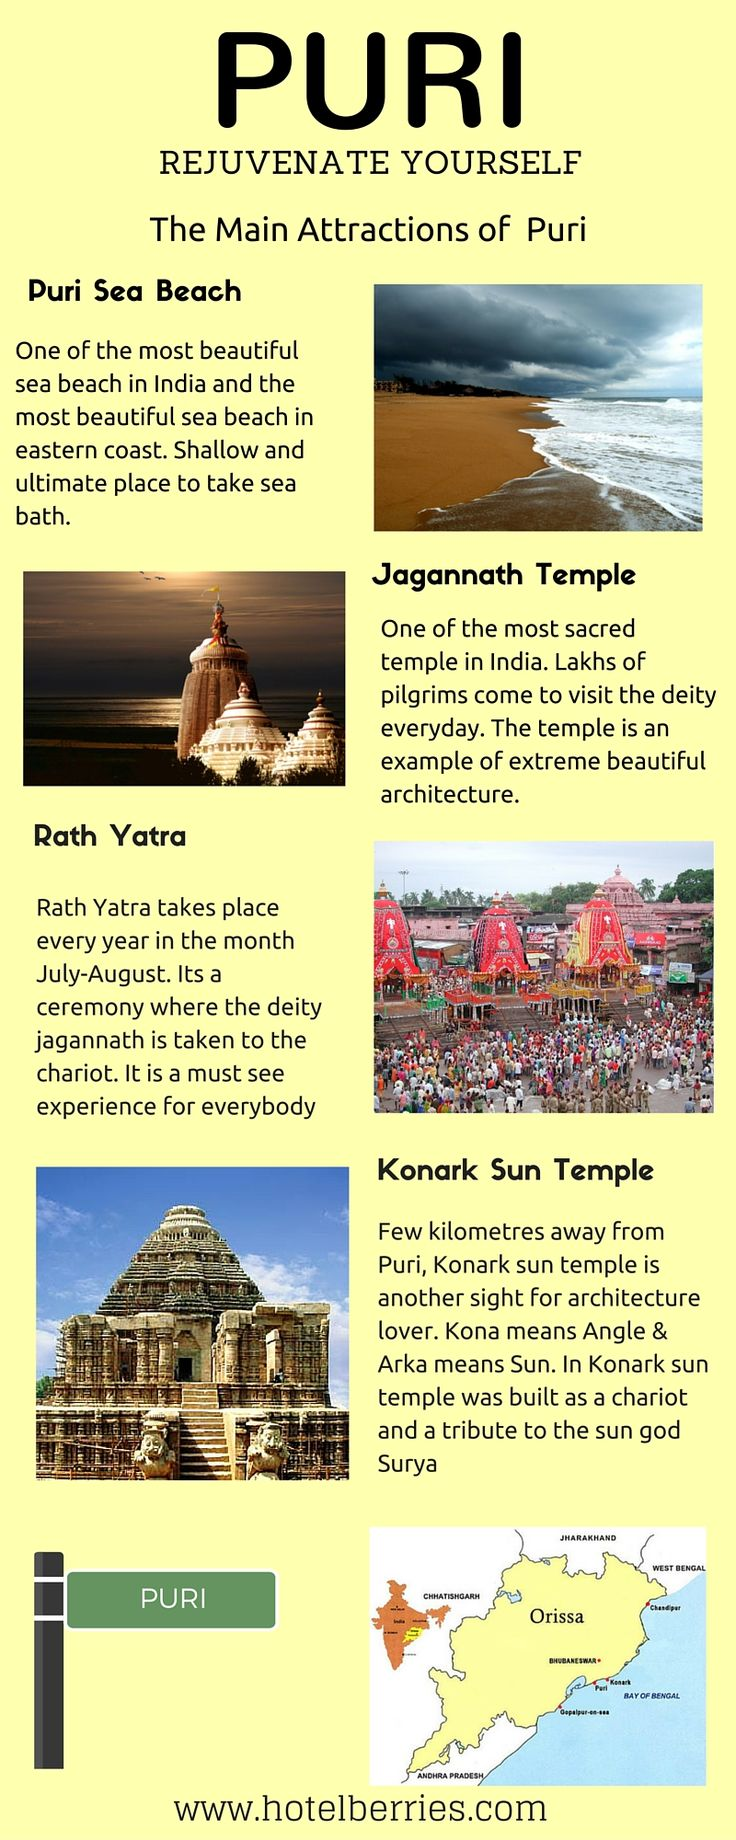 Puri has always been a place that allures lots of tourists & pilgrims for the ages. The beautiful beach, Jagannath temple and many more make Puri, an ultimate destination for the tourist. For accommodation you can come to Hotel Pushpa - A Comfortable stay within your budget. www.hotelberries.com